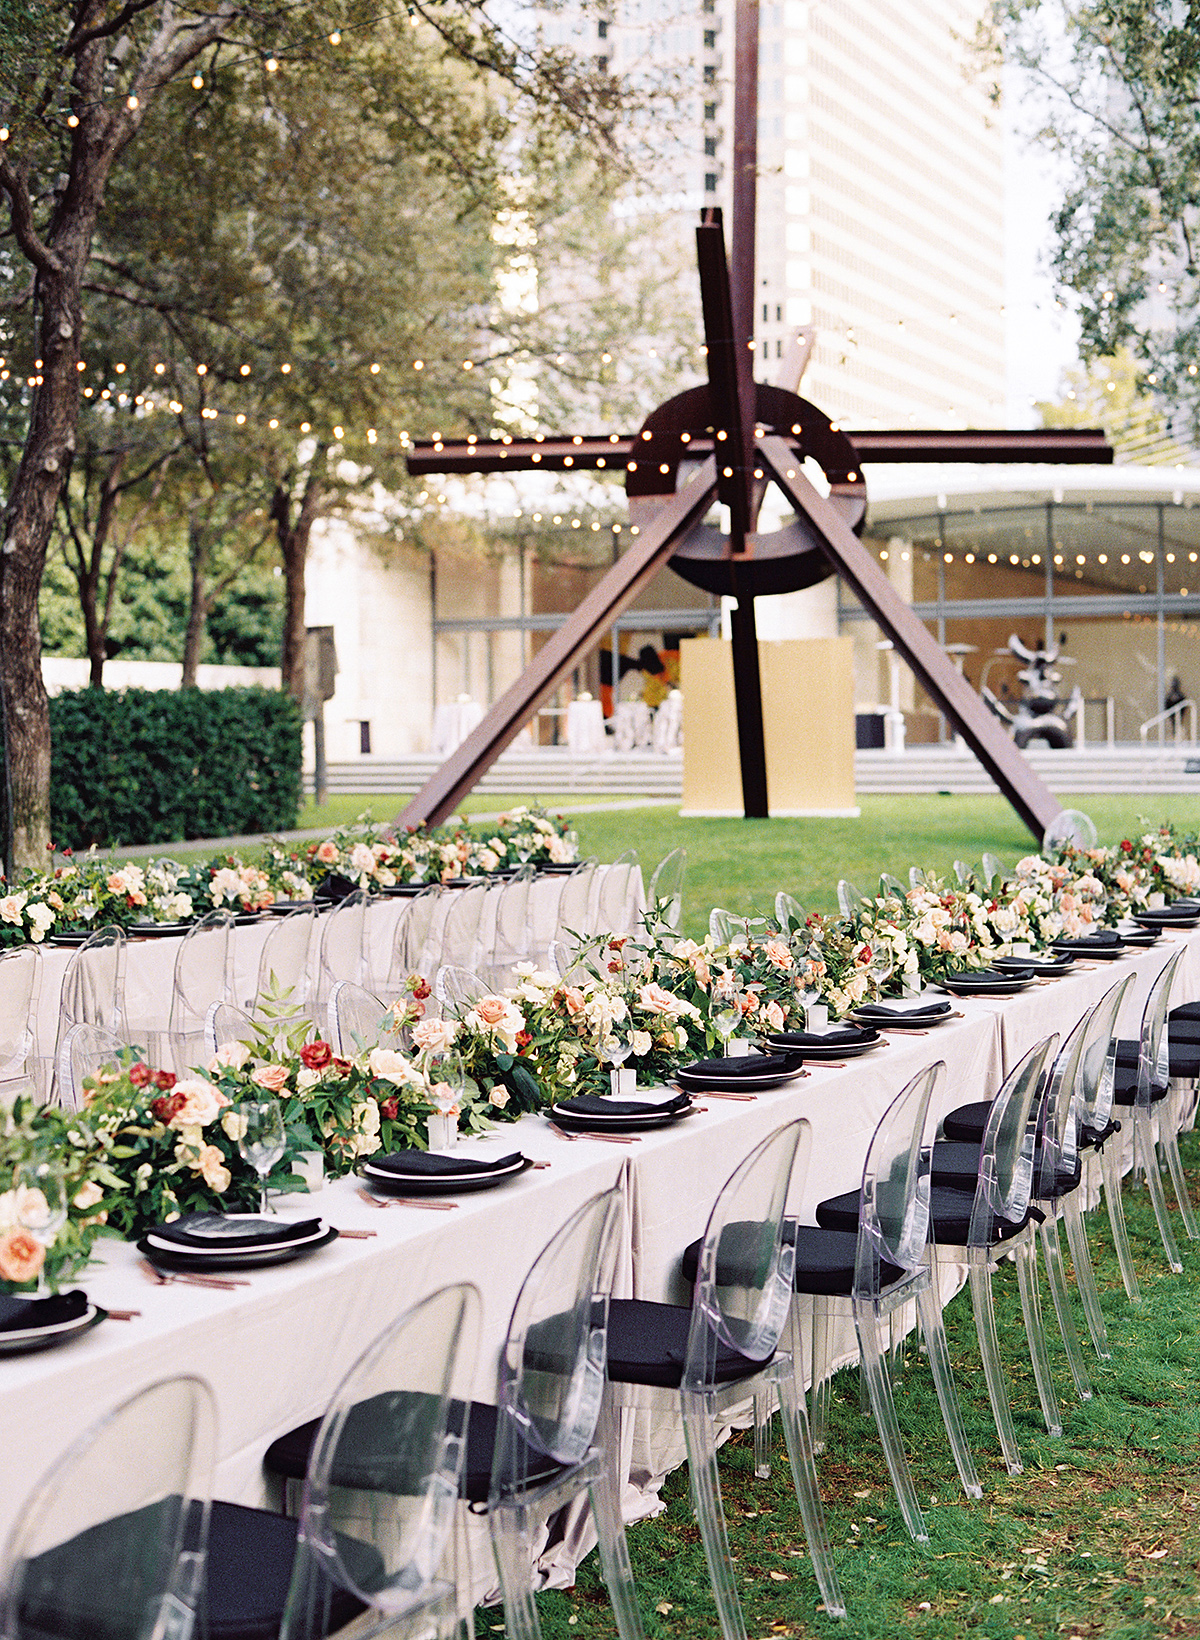 outdoor wedding reception tables near large metal sculpture